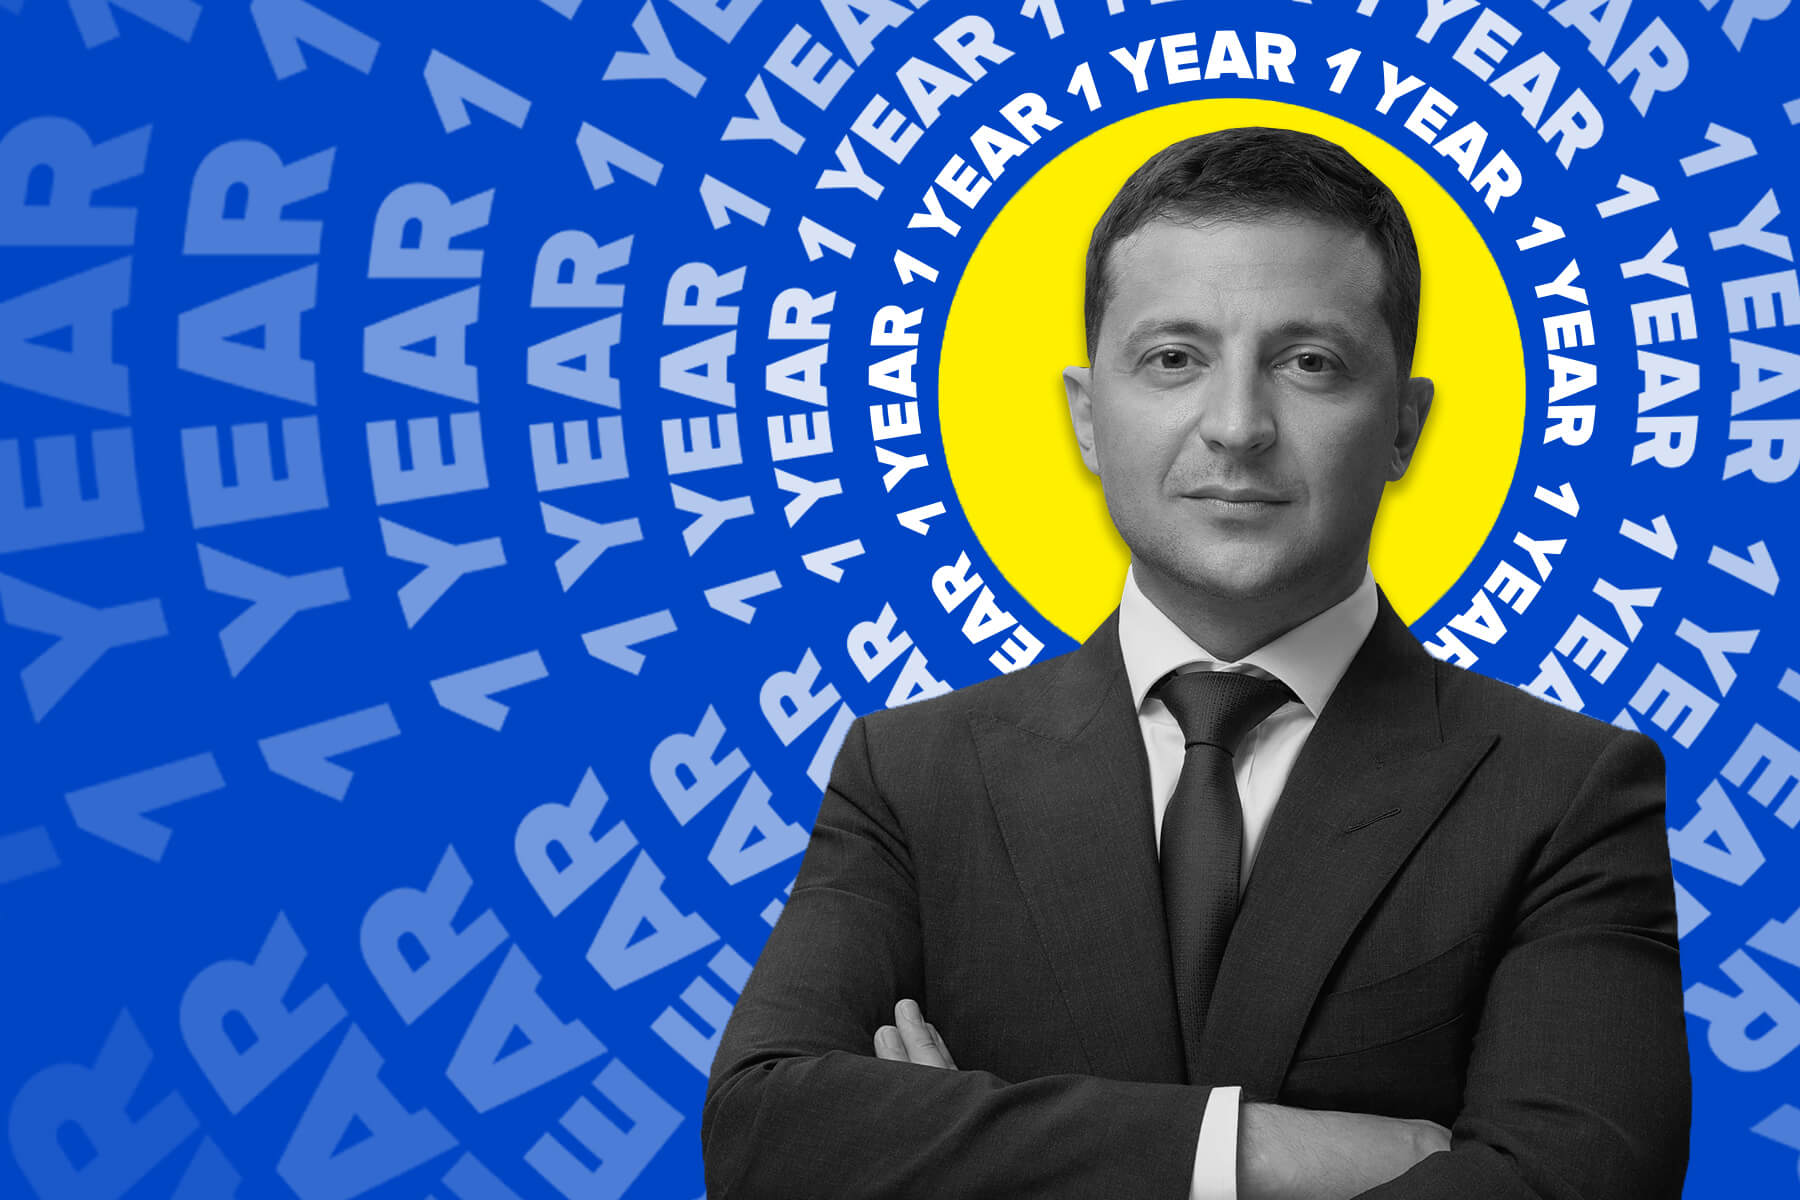 """There Will Be No Oscars. Looking Into The Film Titled """"A Year Of President Zelenskyi"""""""